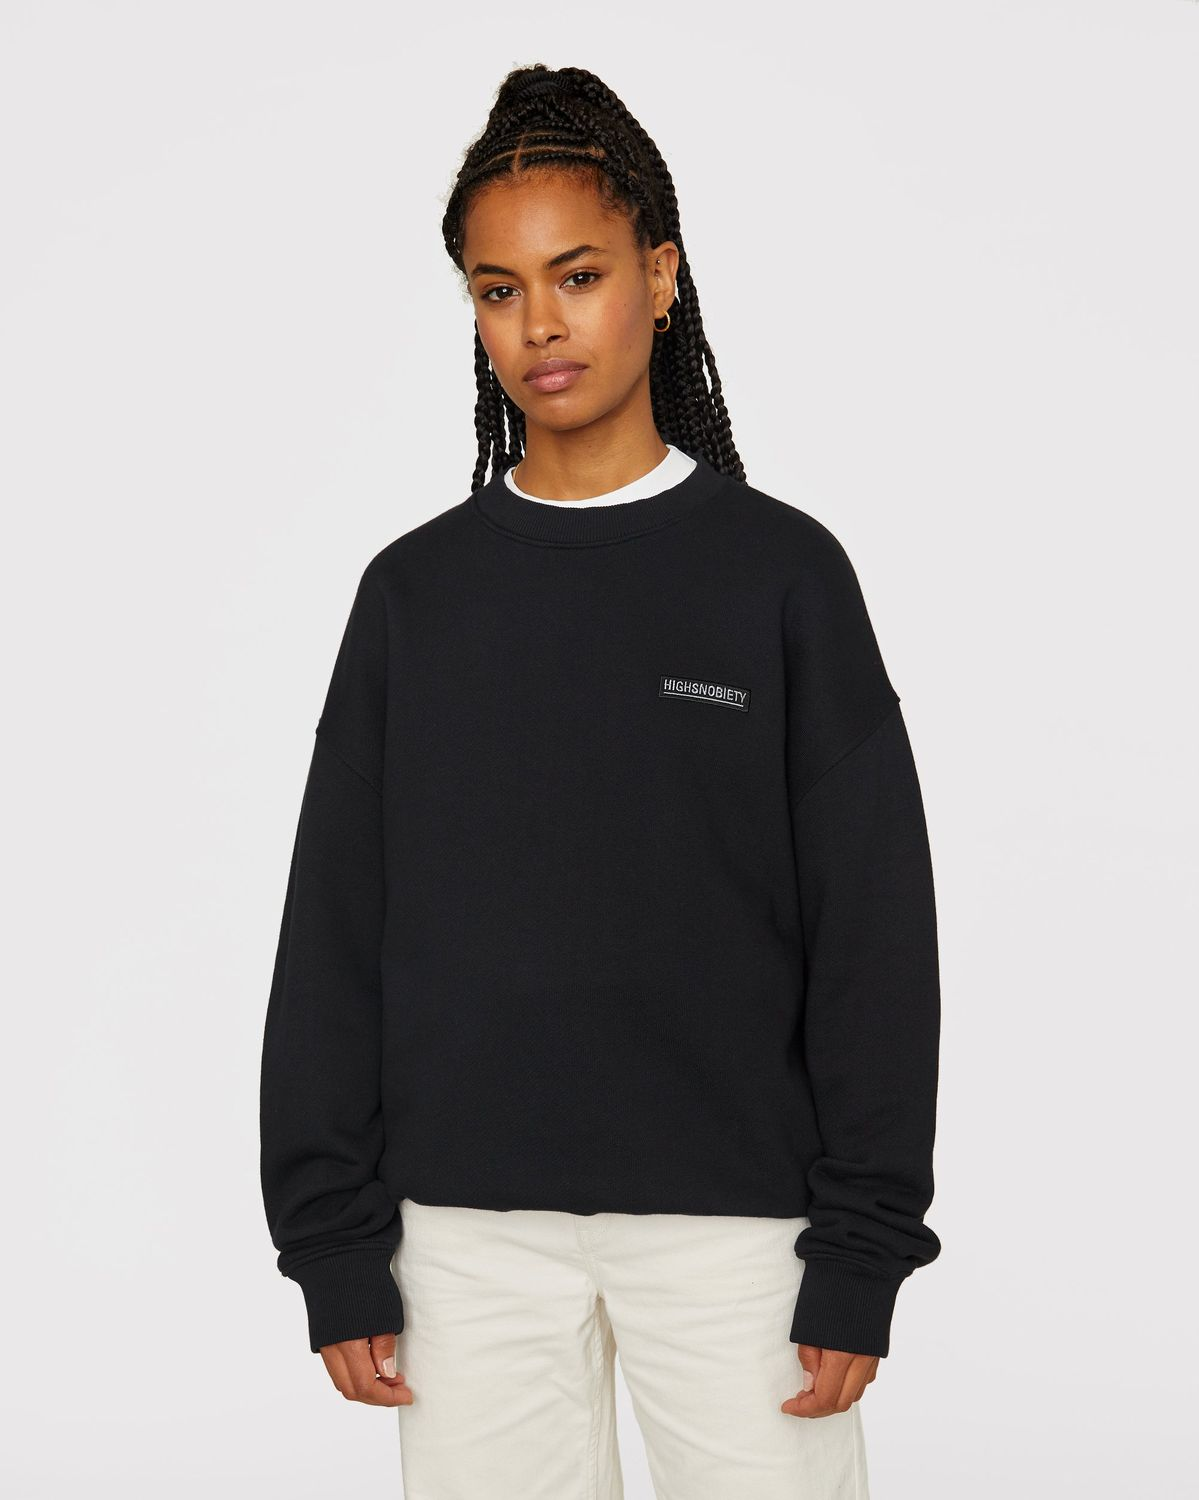 Highsnobiety Staples - Sweatshirt Black - Image 6